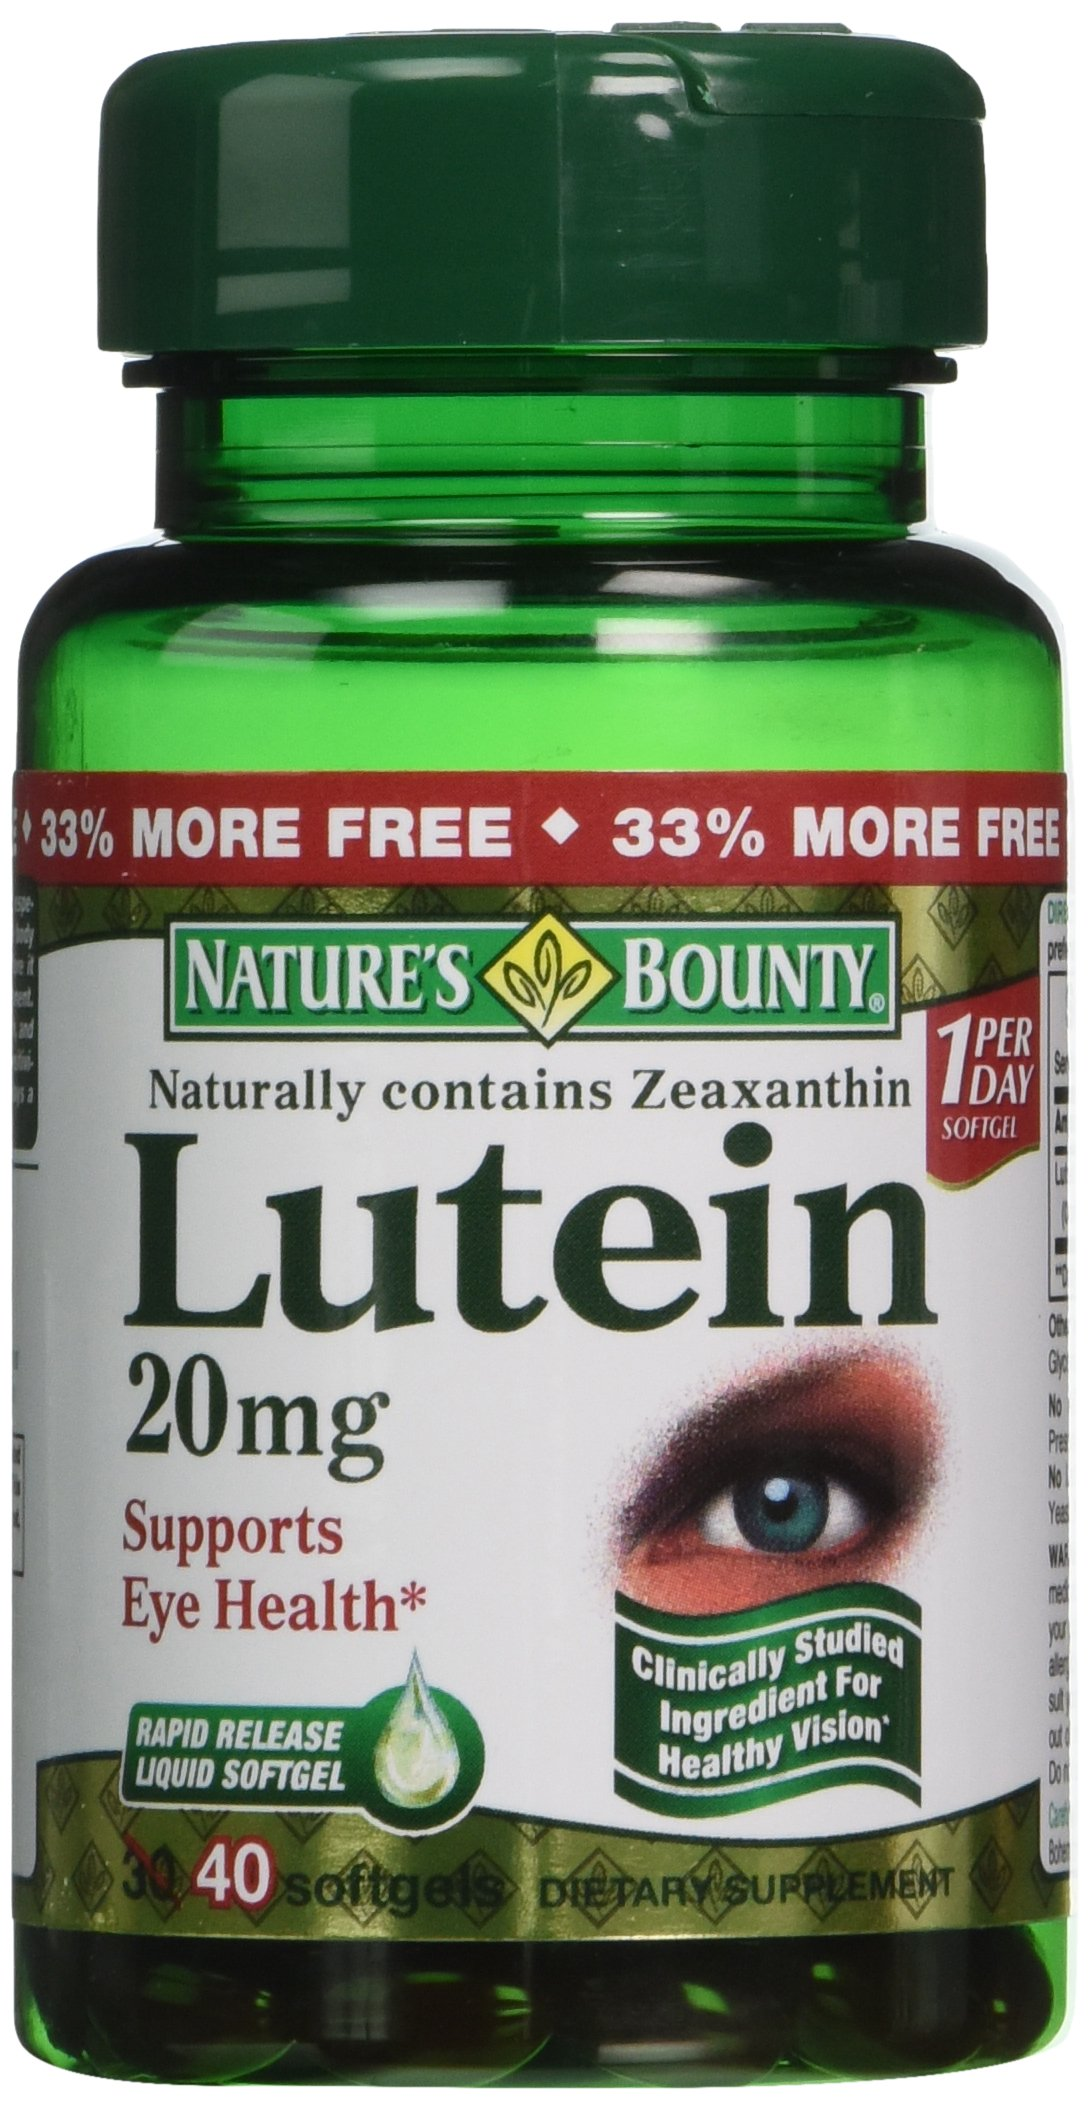 Nature's Bounty Lutein 20mg, 40 Softgels (Pack of 4) by Nature's Bounty